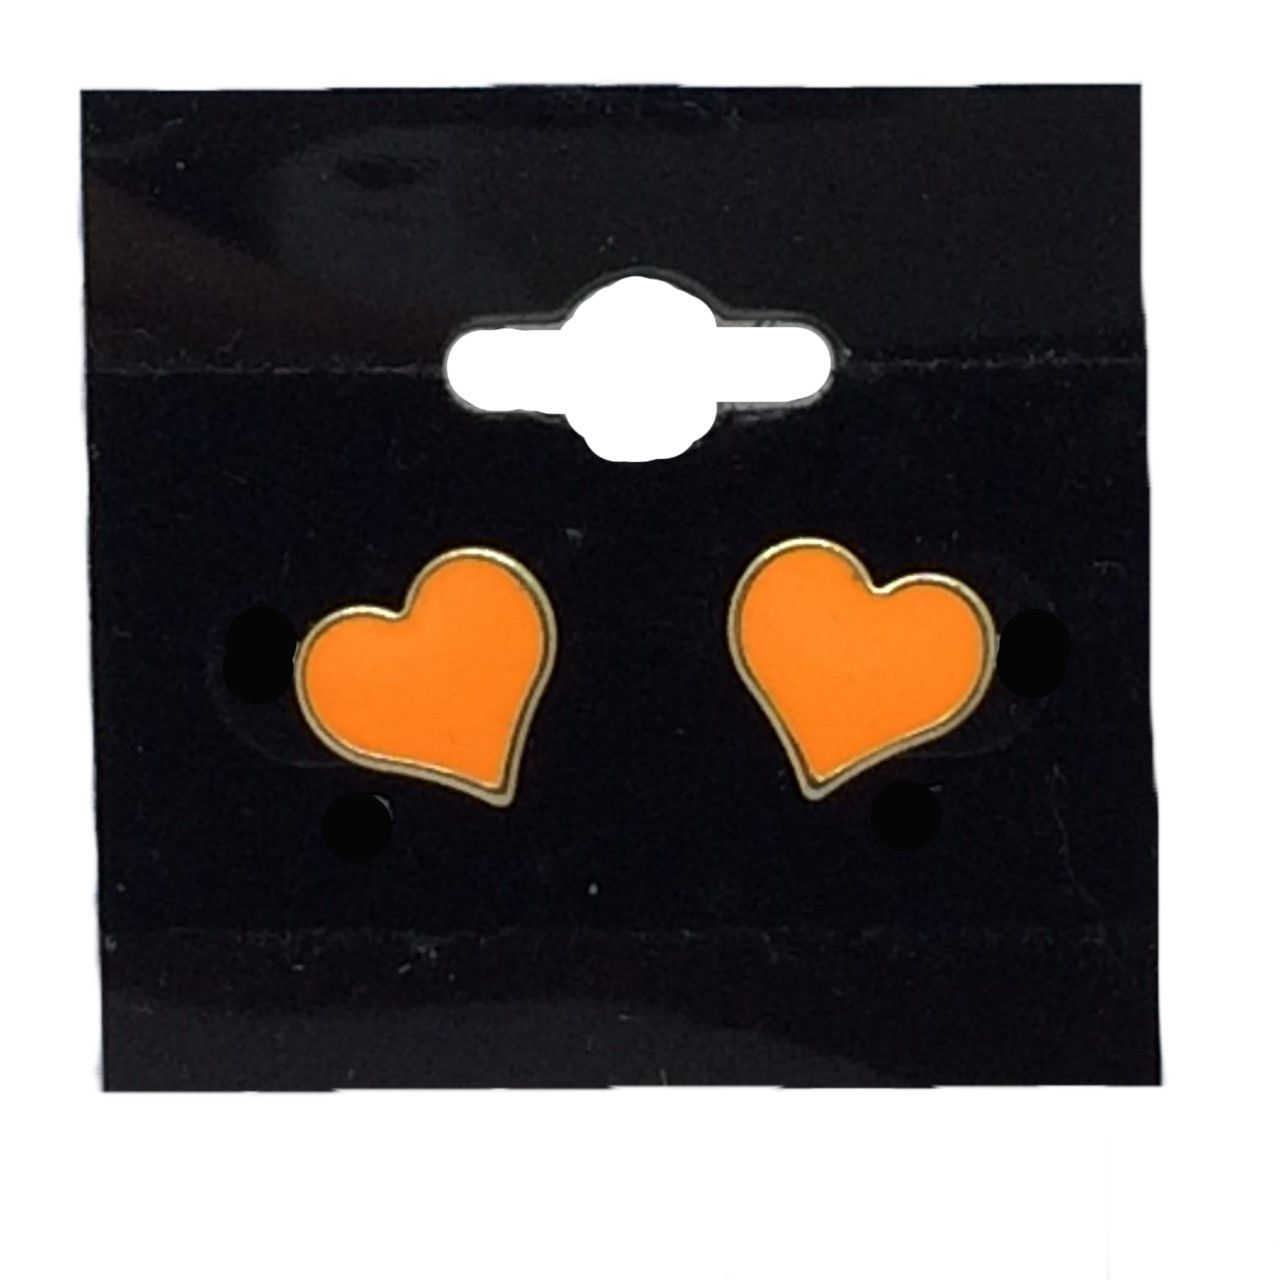 Heart Earrings Trimmed In A Gold Colour and are in White or Orange